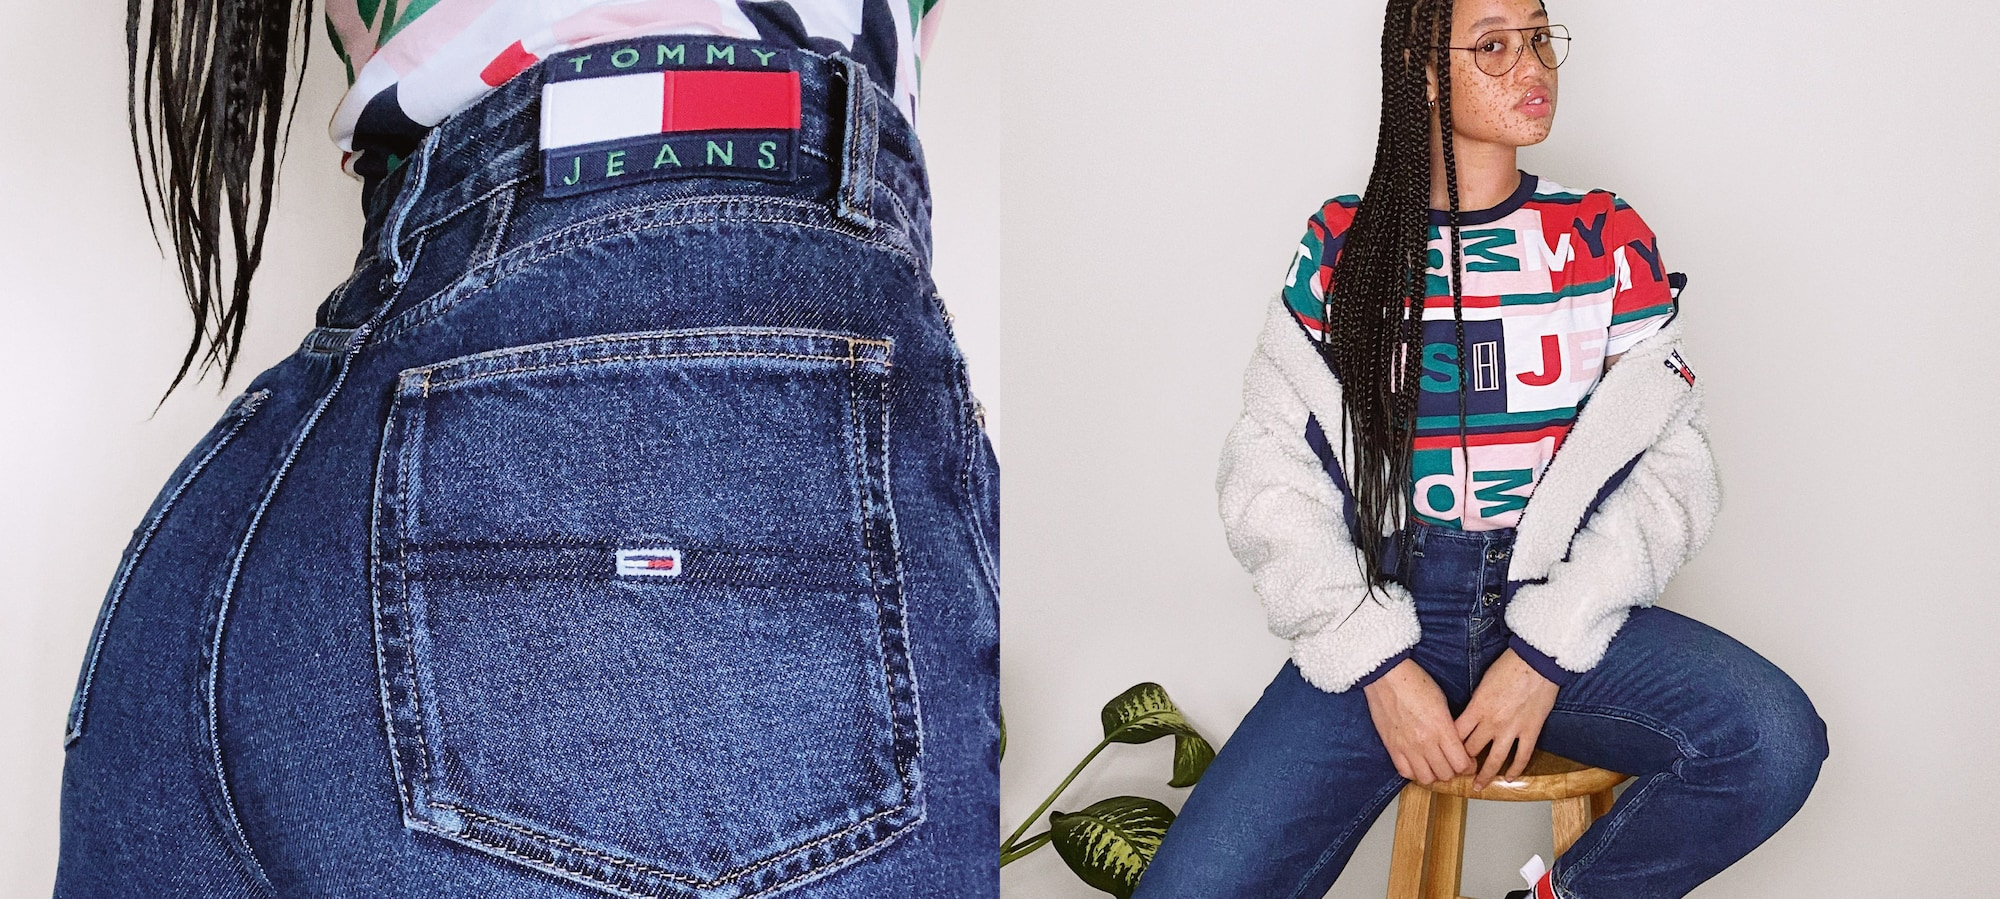 Recycled Denim Tommy Jeans